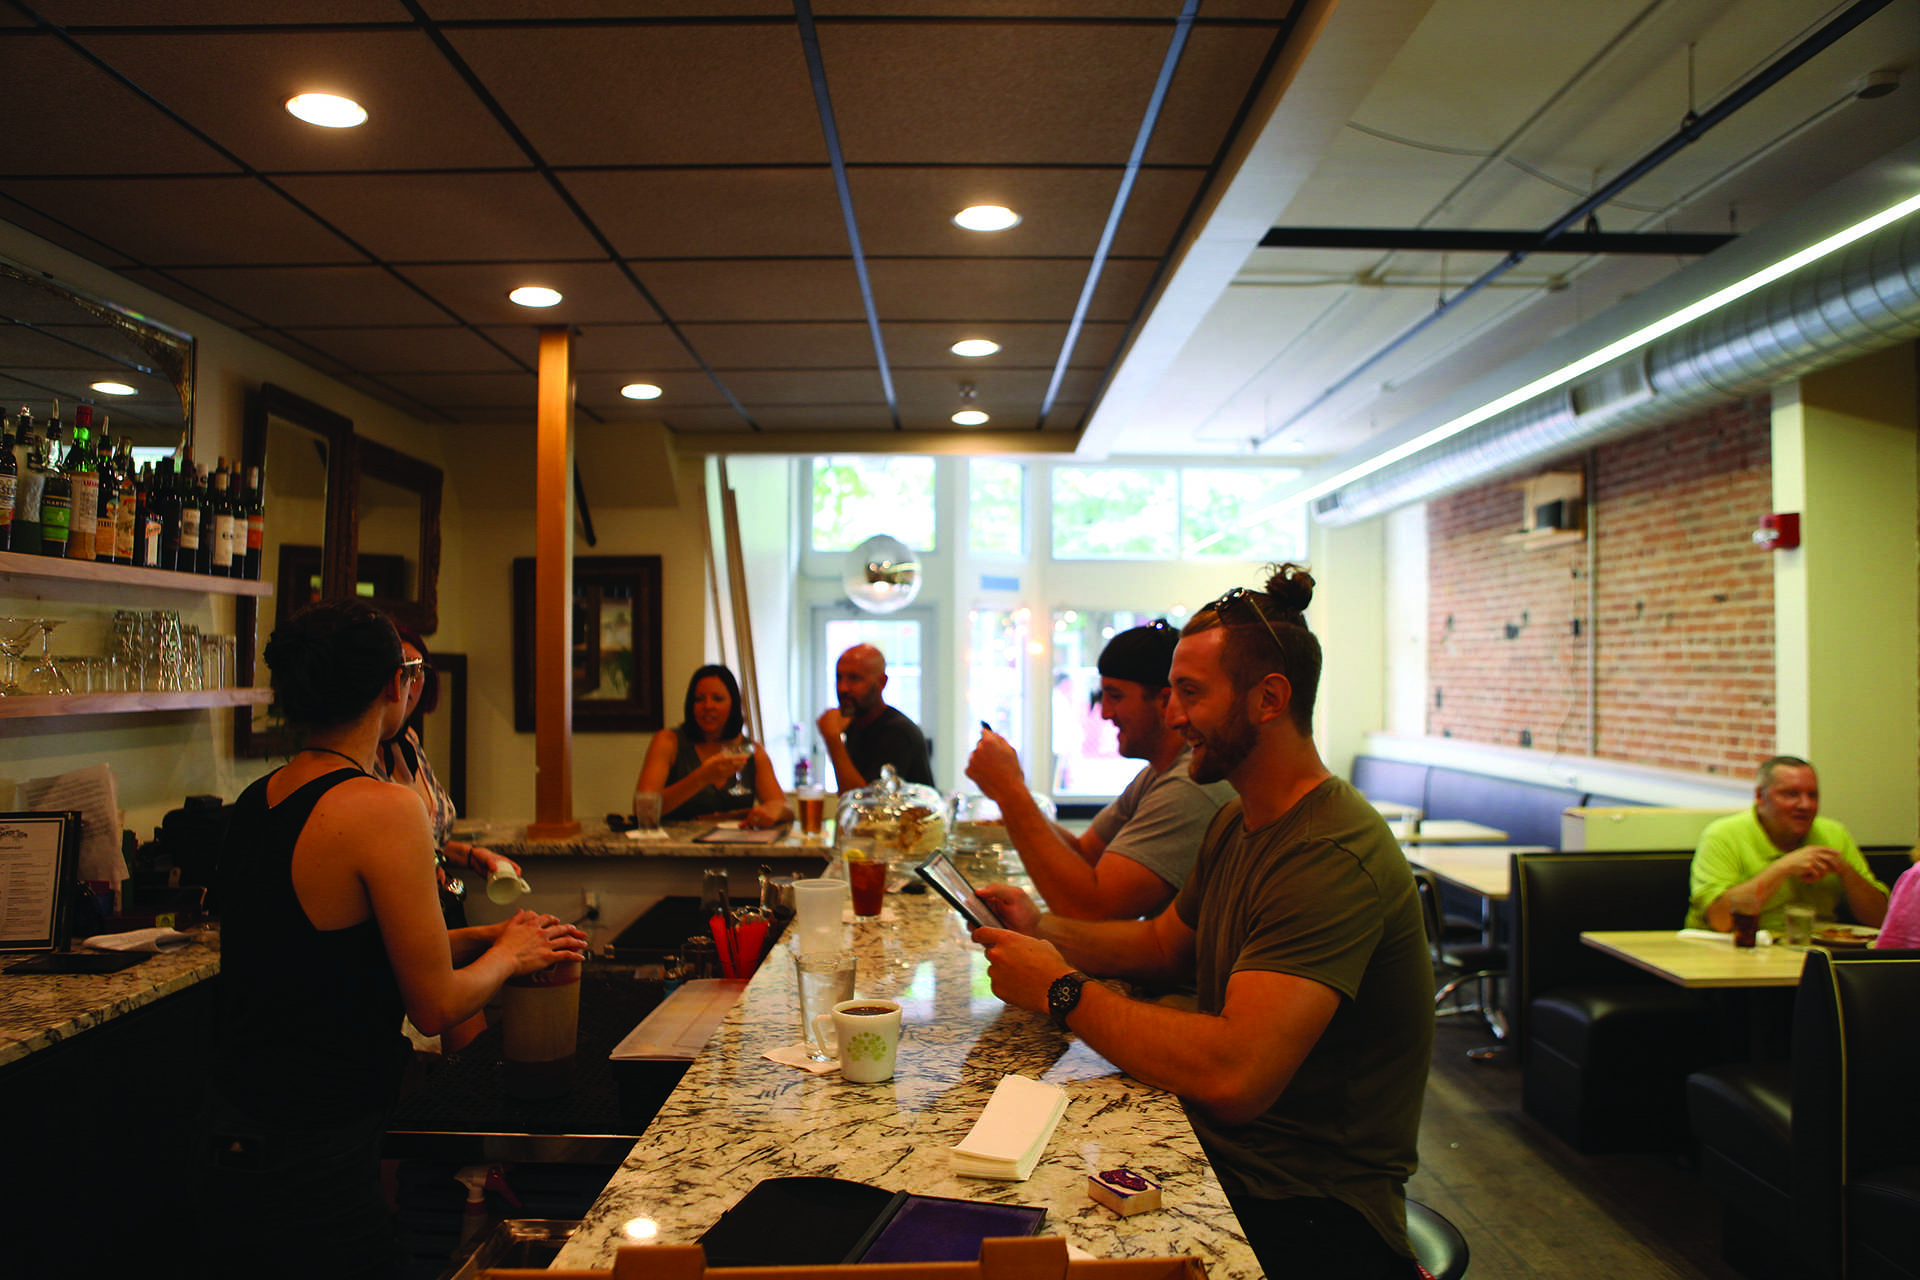 Dandy Lion brings Southern comfort, class to Ped Mall